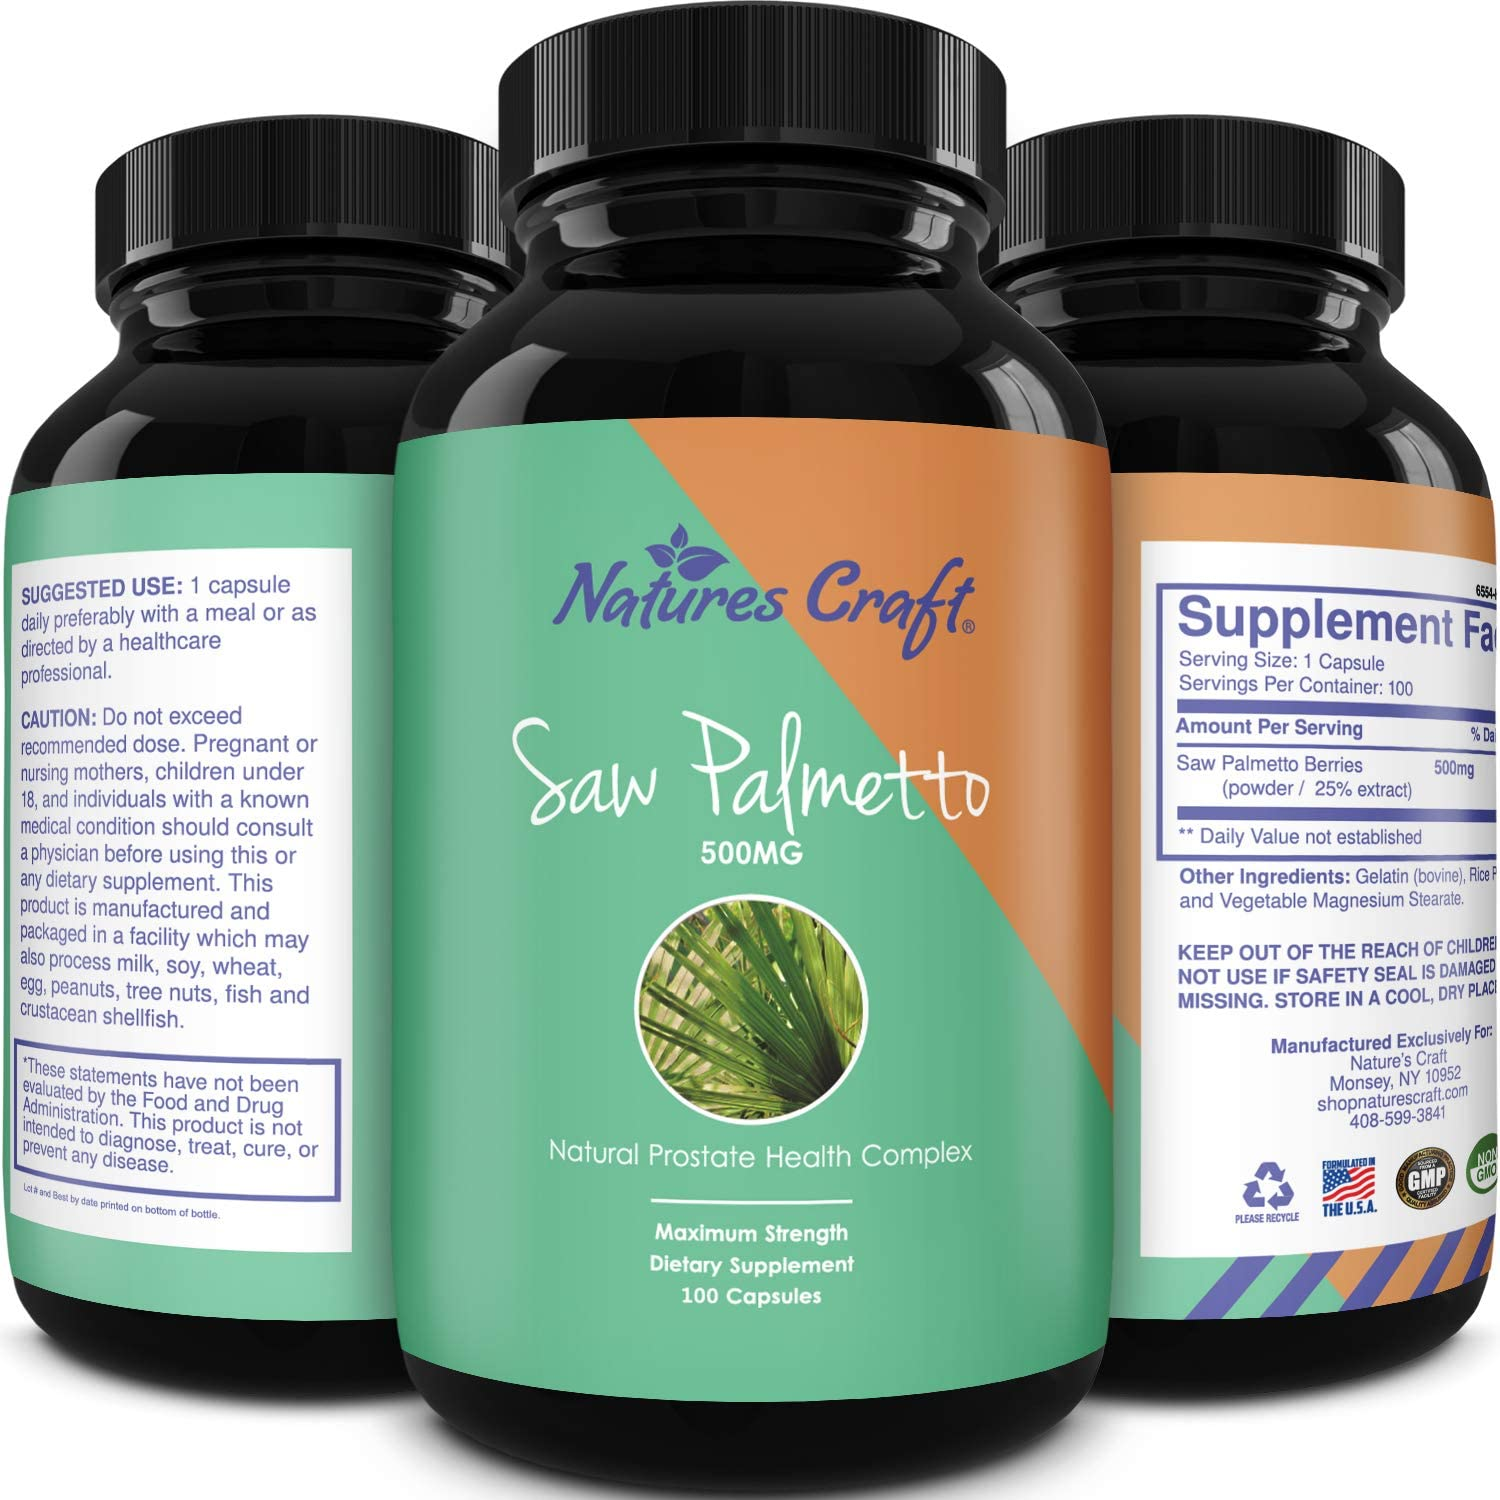 Natures Crafts Saw Palmetto Extract Berry Hair Loss